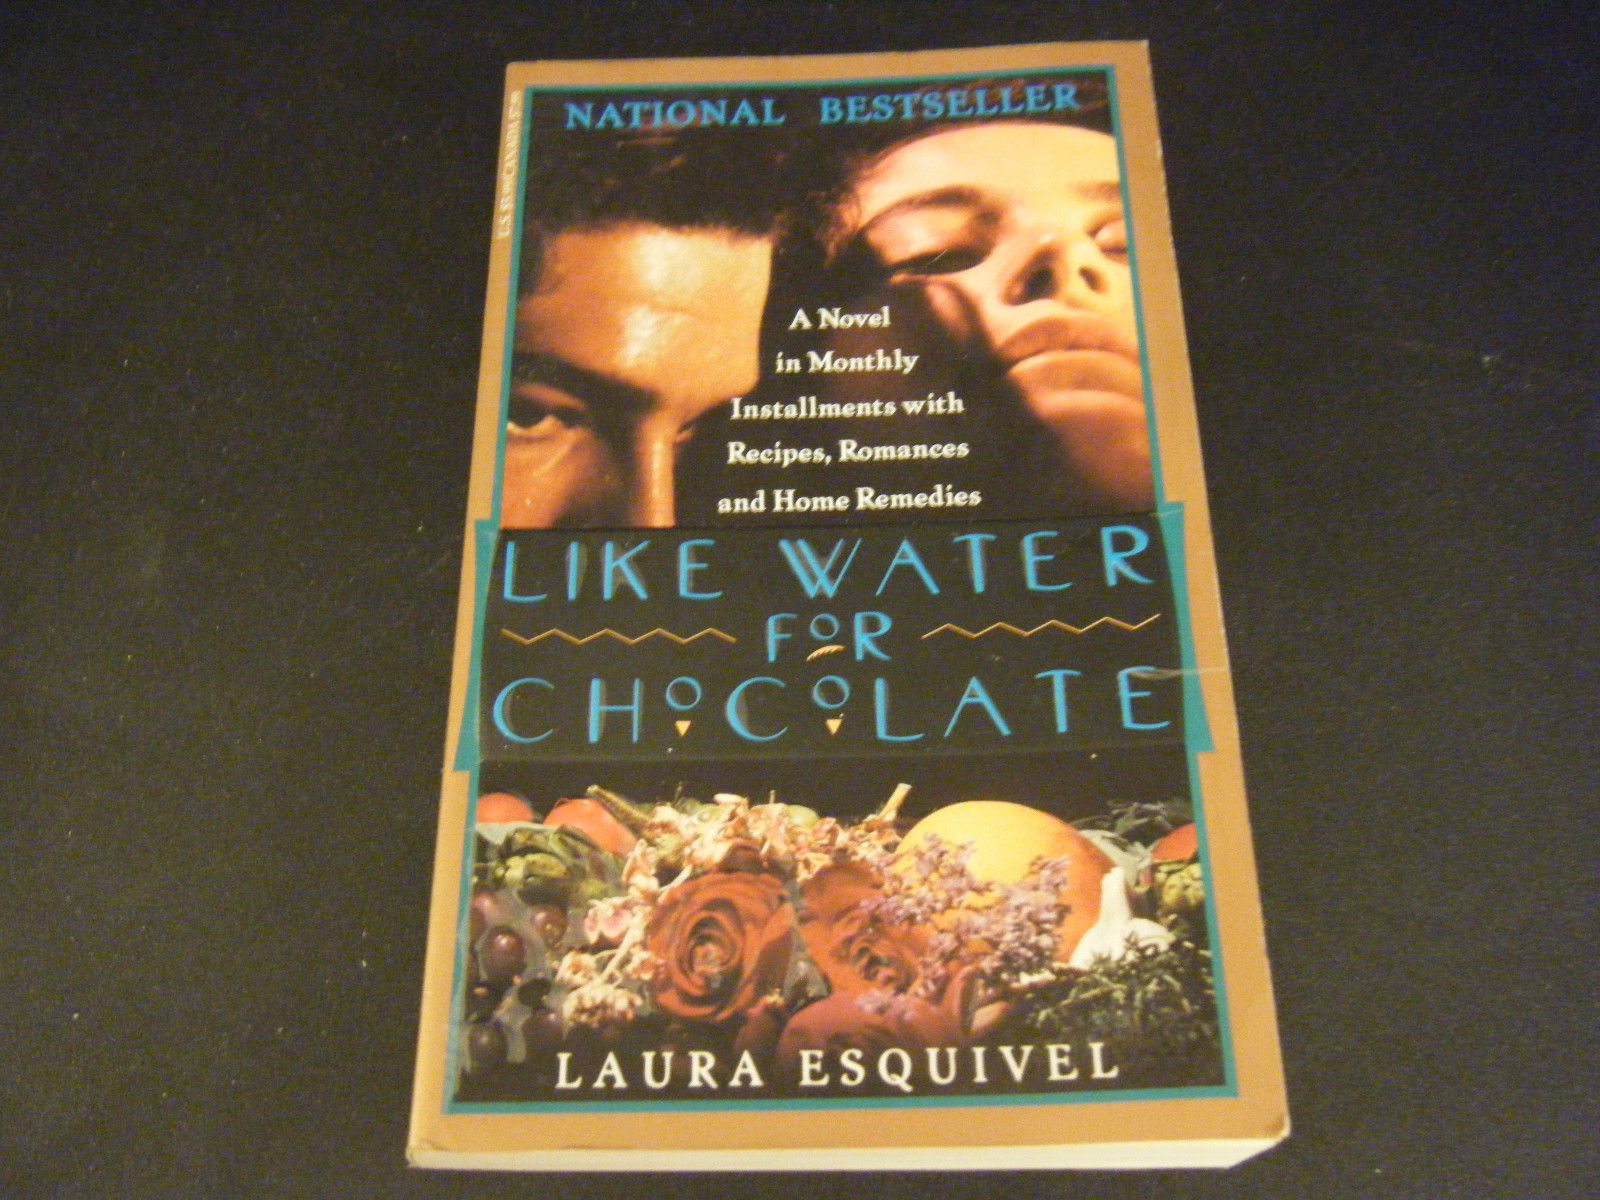 an analysis of like water for chocolates a novel by laura esquivel Esquivel] on amazoncom then a literary analysis of like water for chocolate by laura esquivel the atmospheric pressure readings from a los angeles storm chaser upended the entire system.